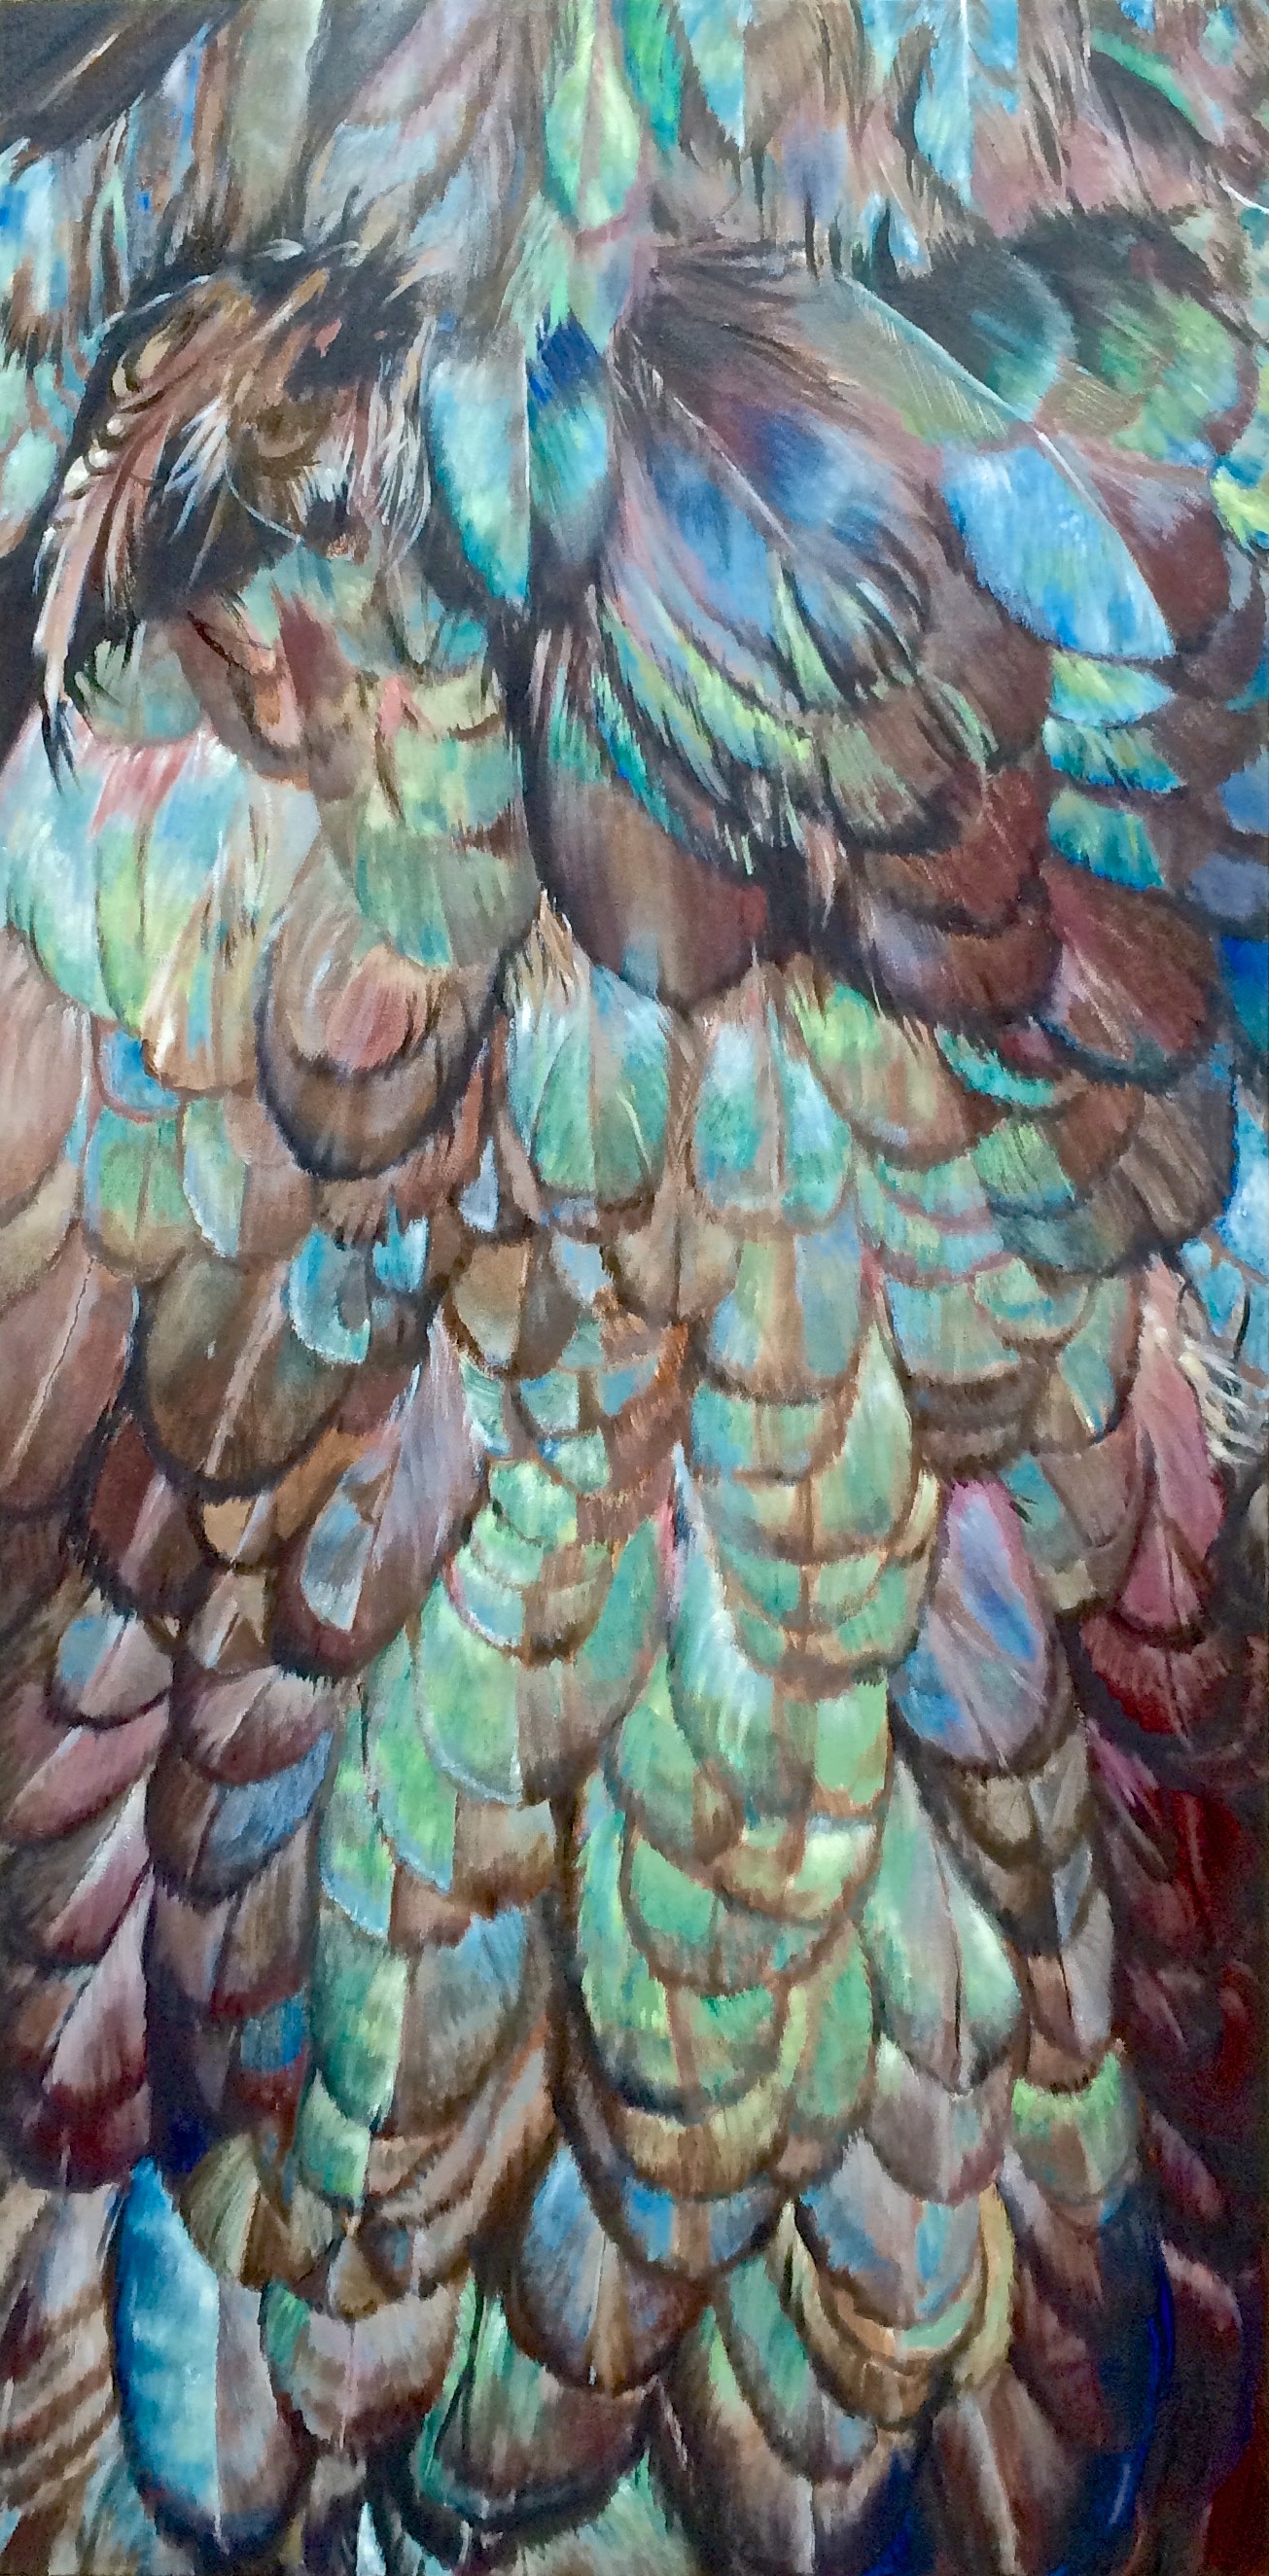 Eggs and Feathers: Black chicken feathers turn iridescent in the sun